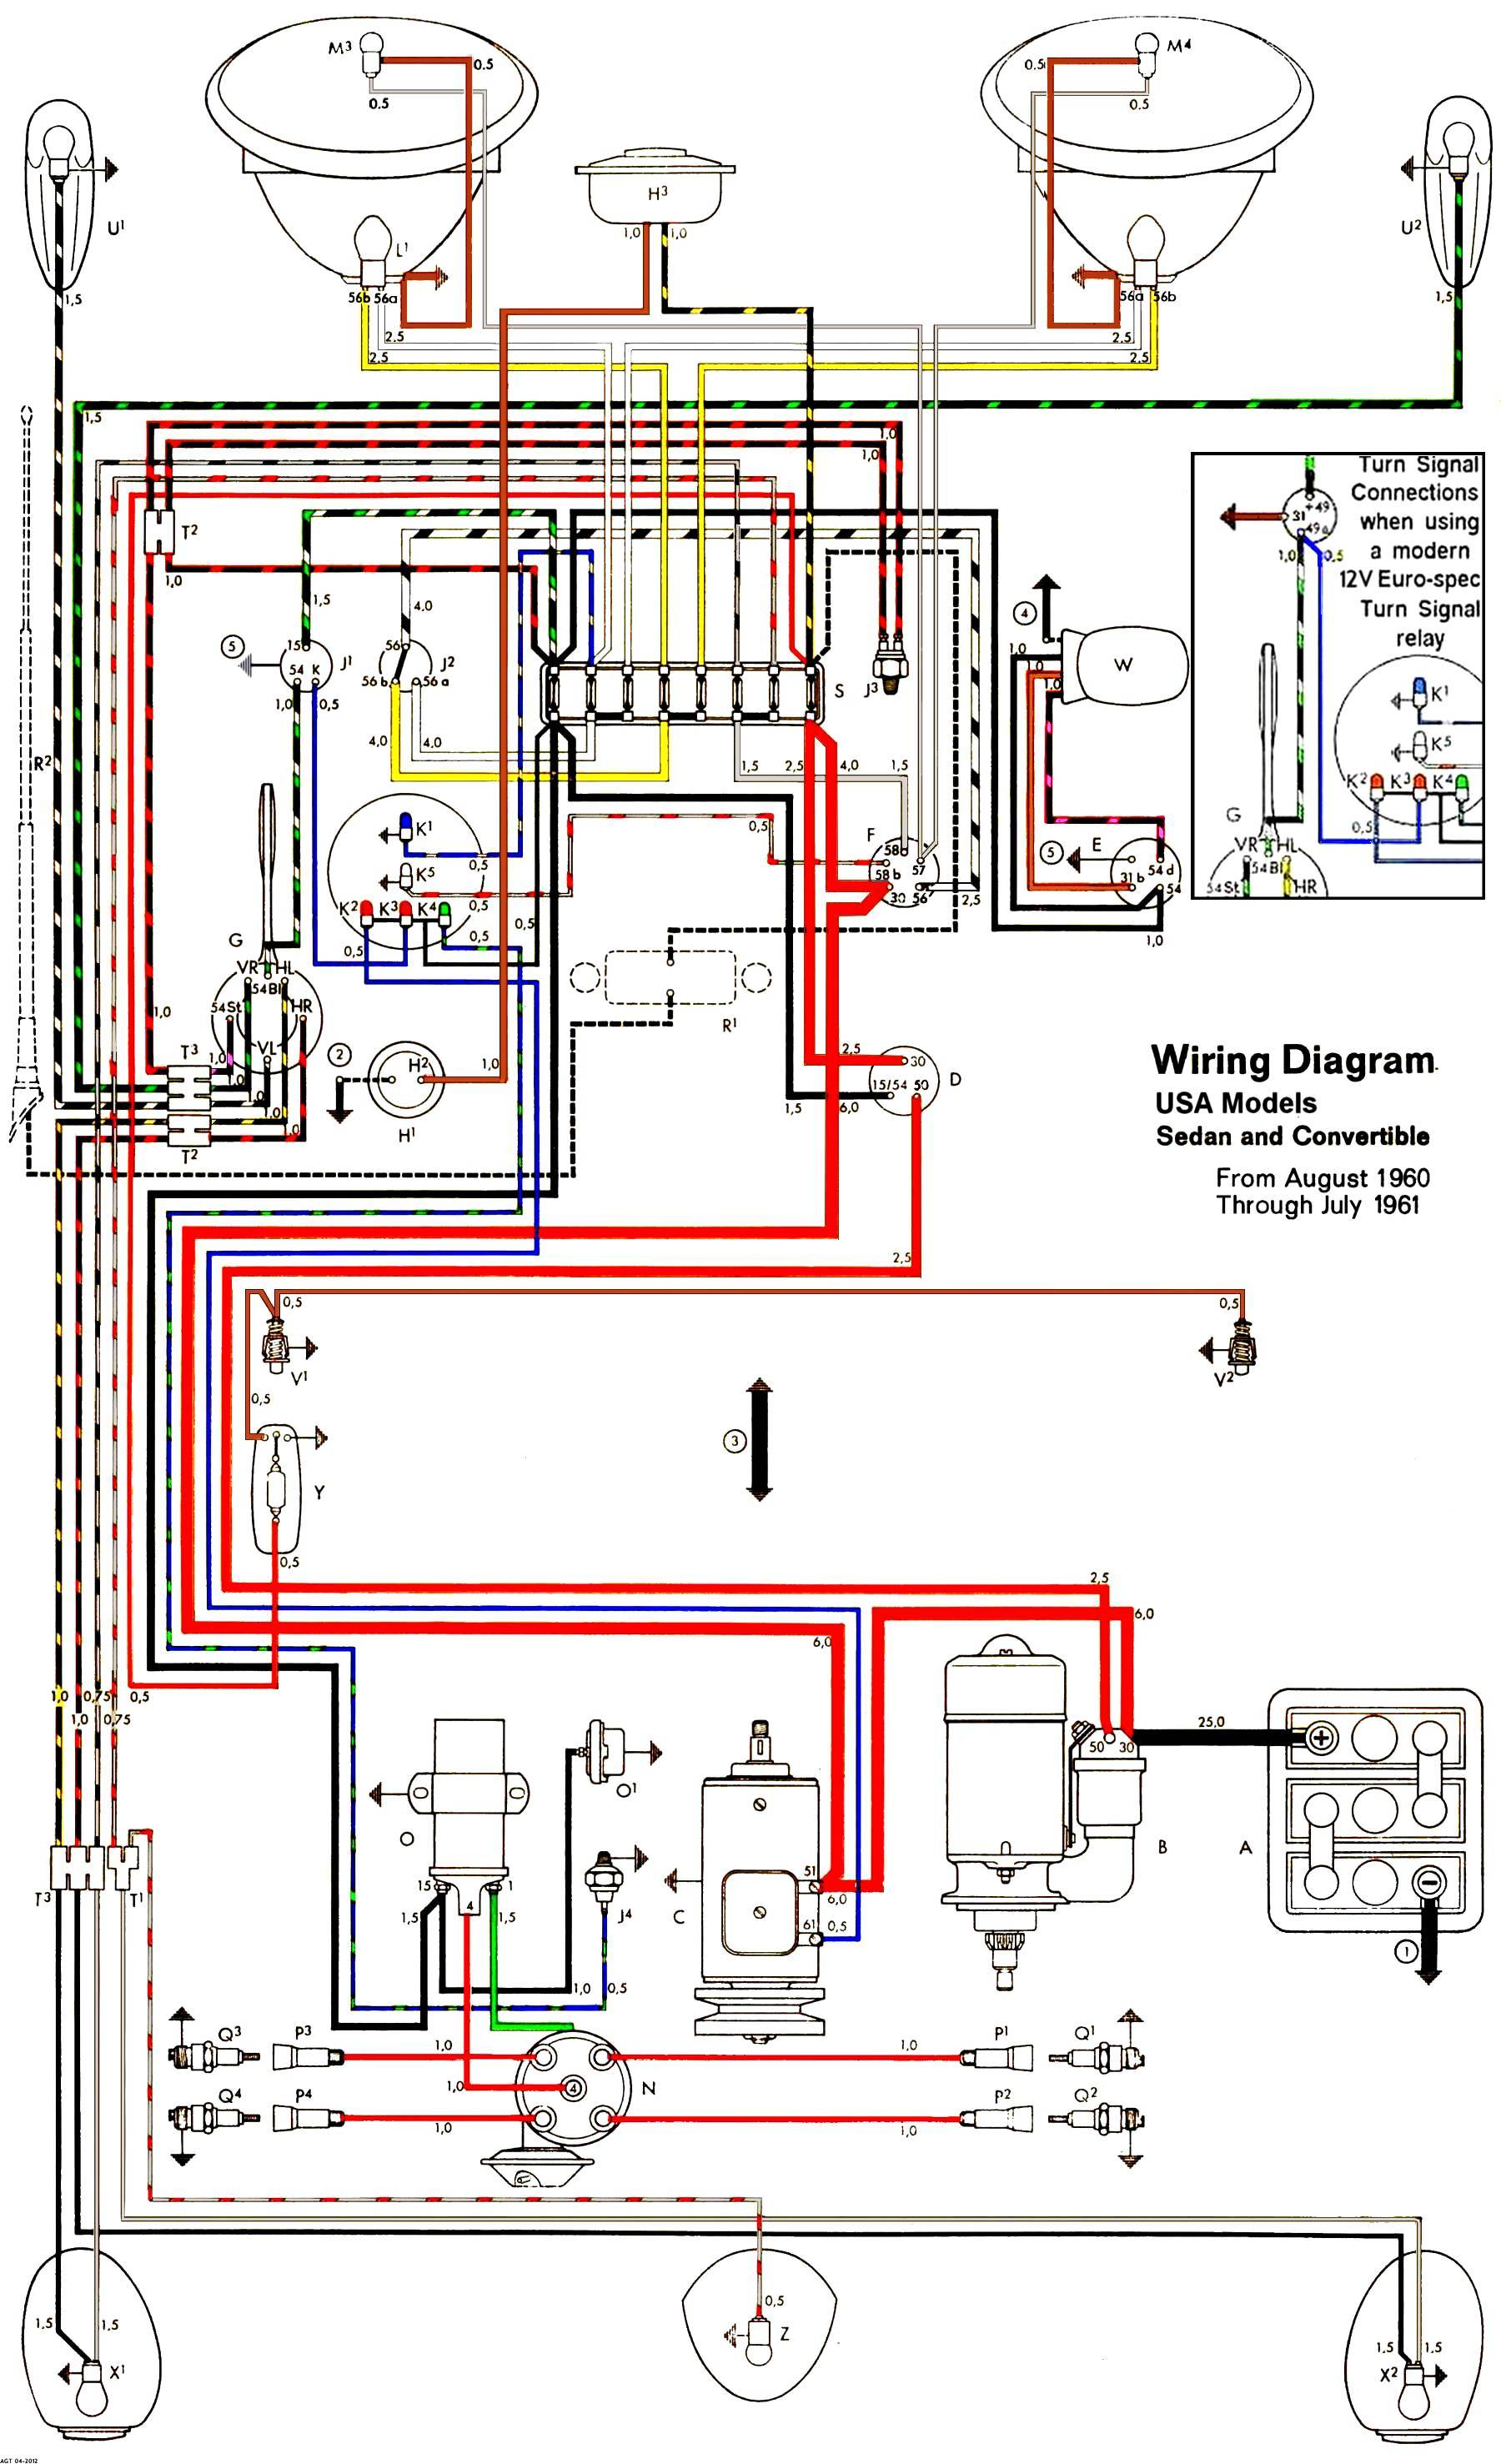 1961USA T1 thesamba com type 1 wiring diagrams vw alternator wiring harness at n-0.co